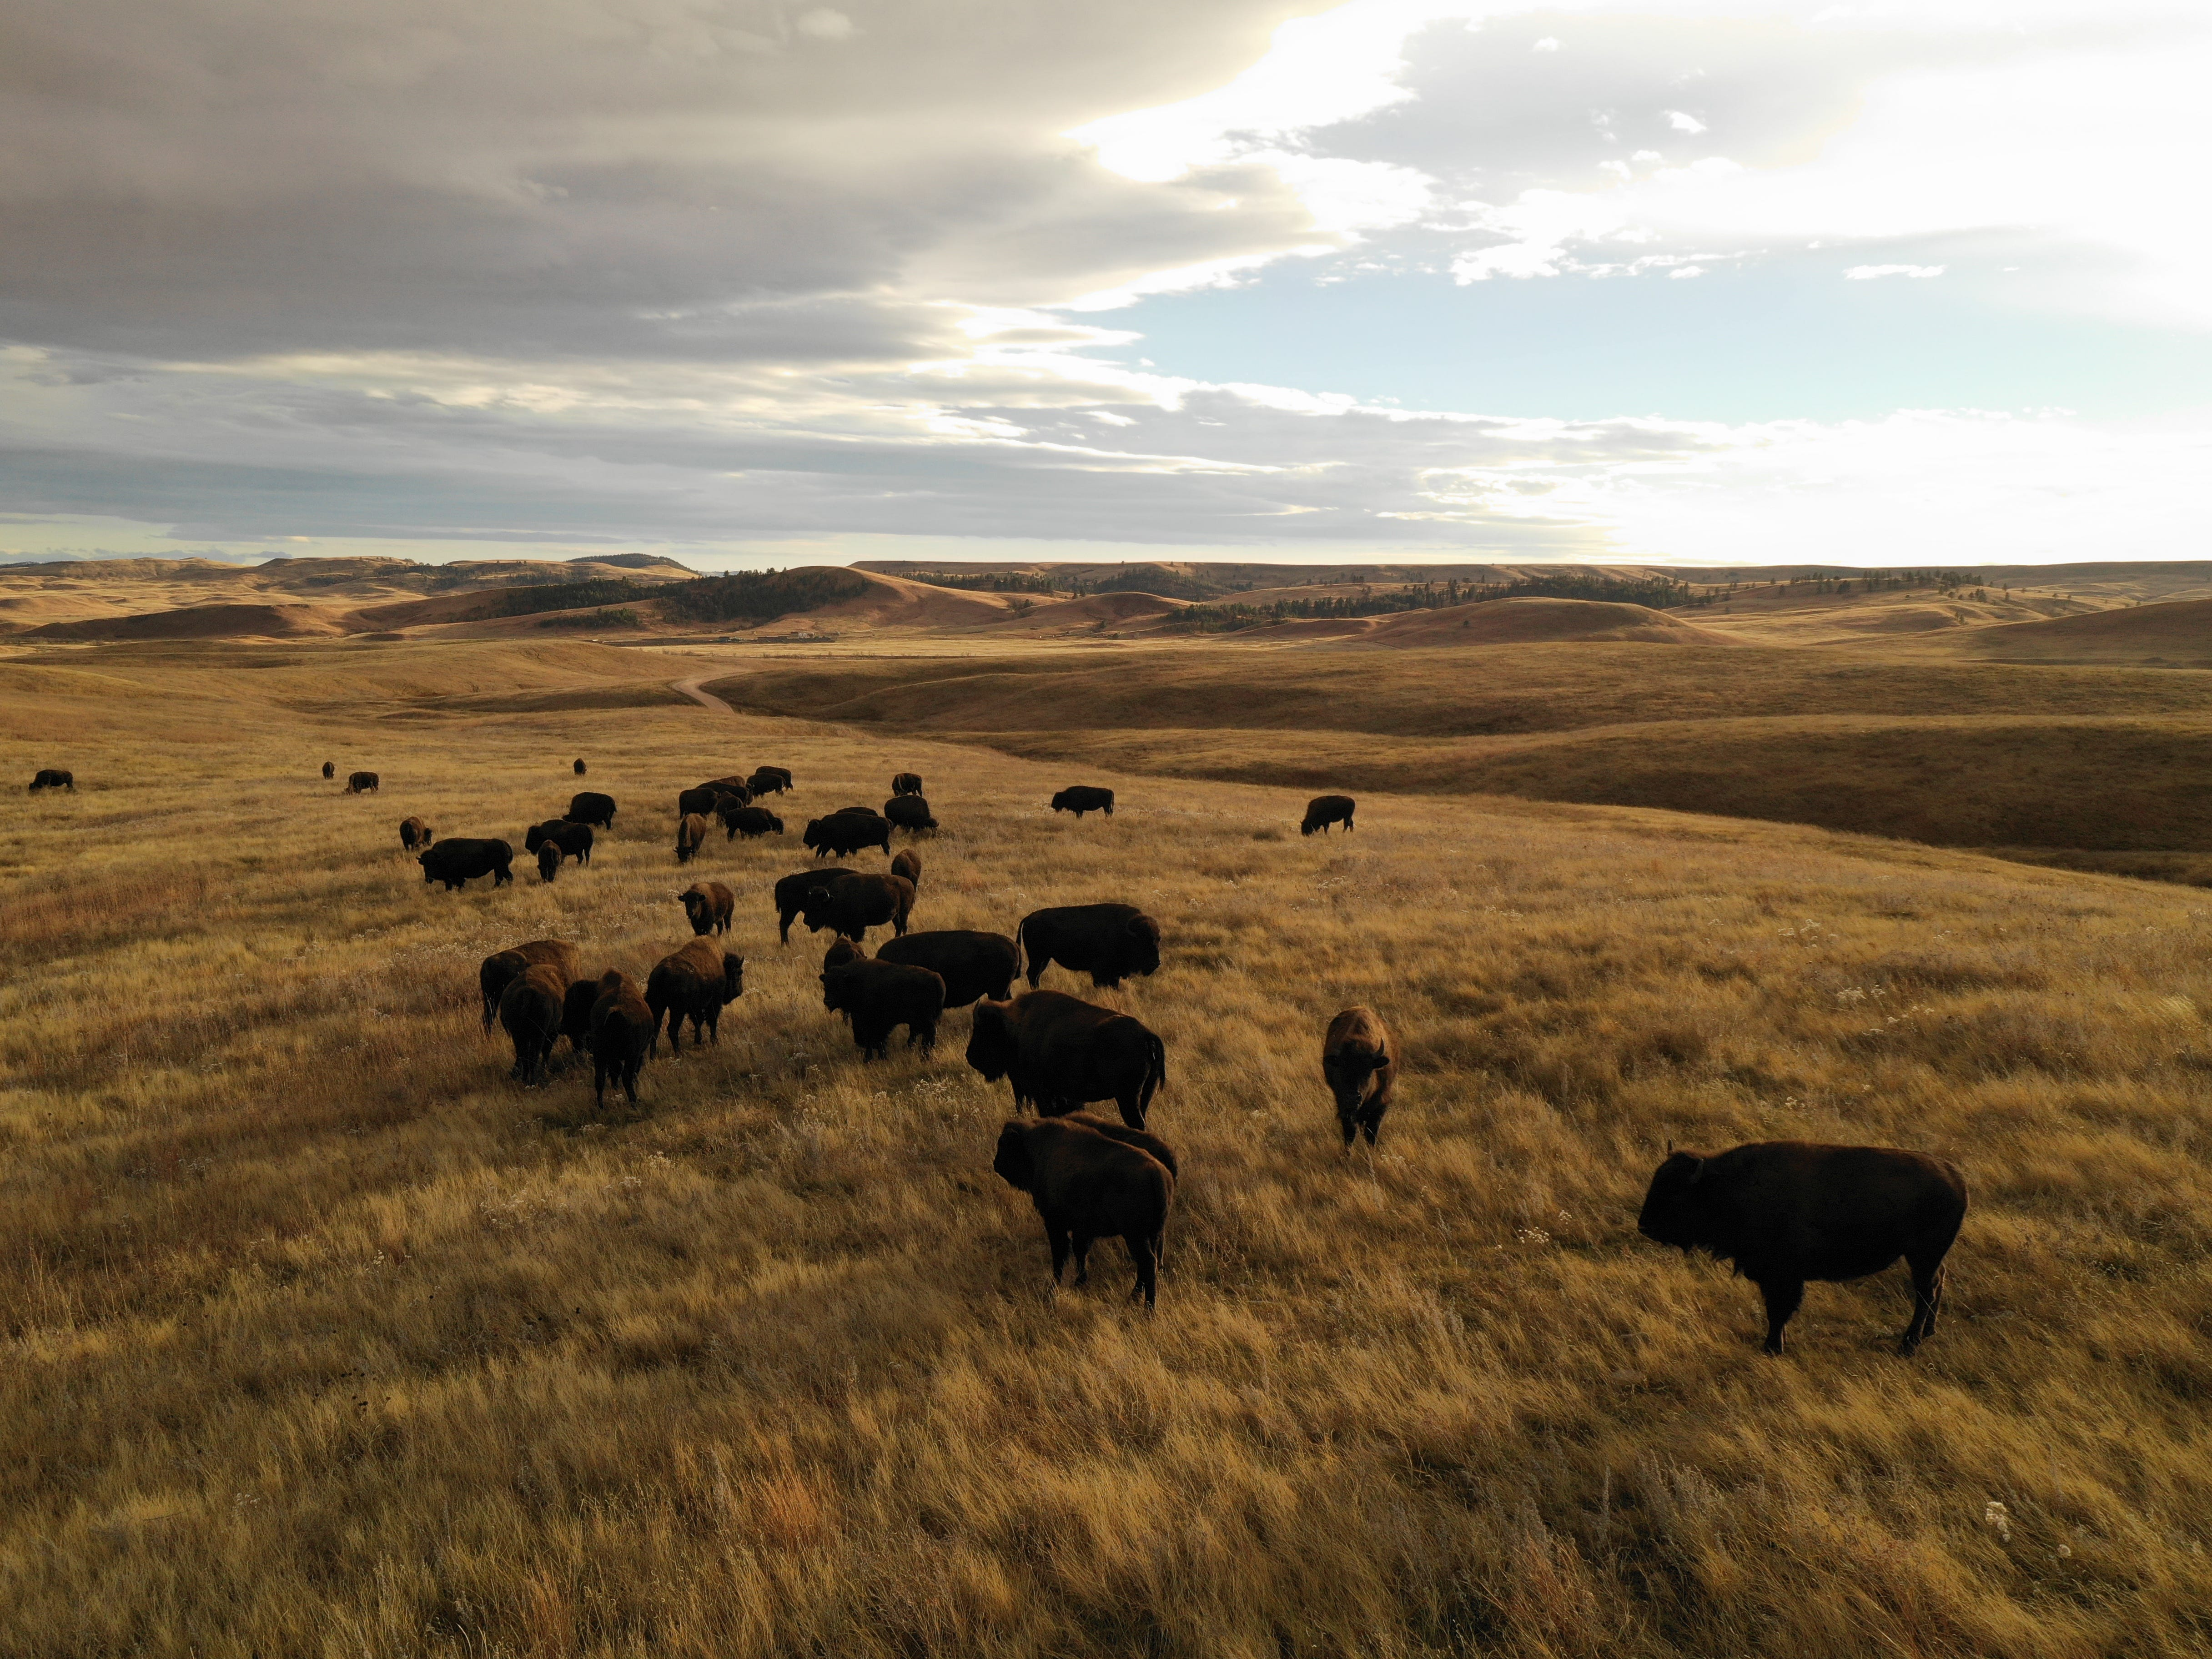 Custer State Park: Oh give me a home where the buffalo roam ...